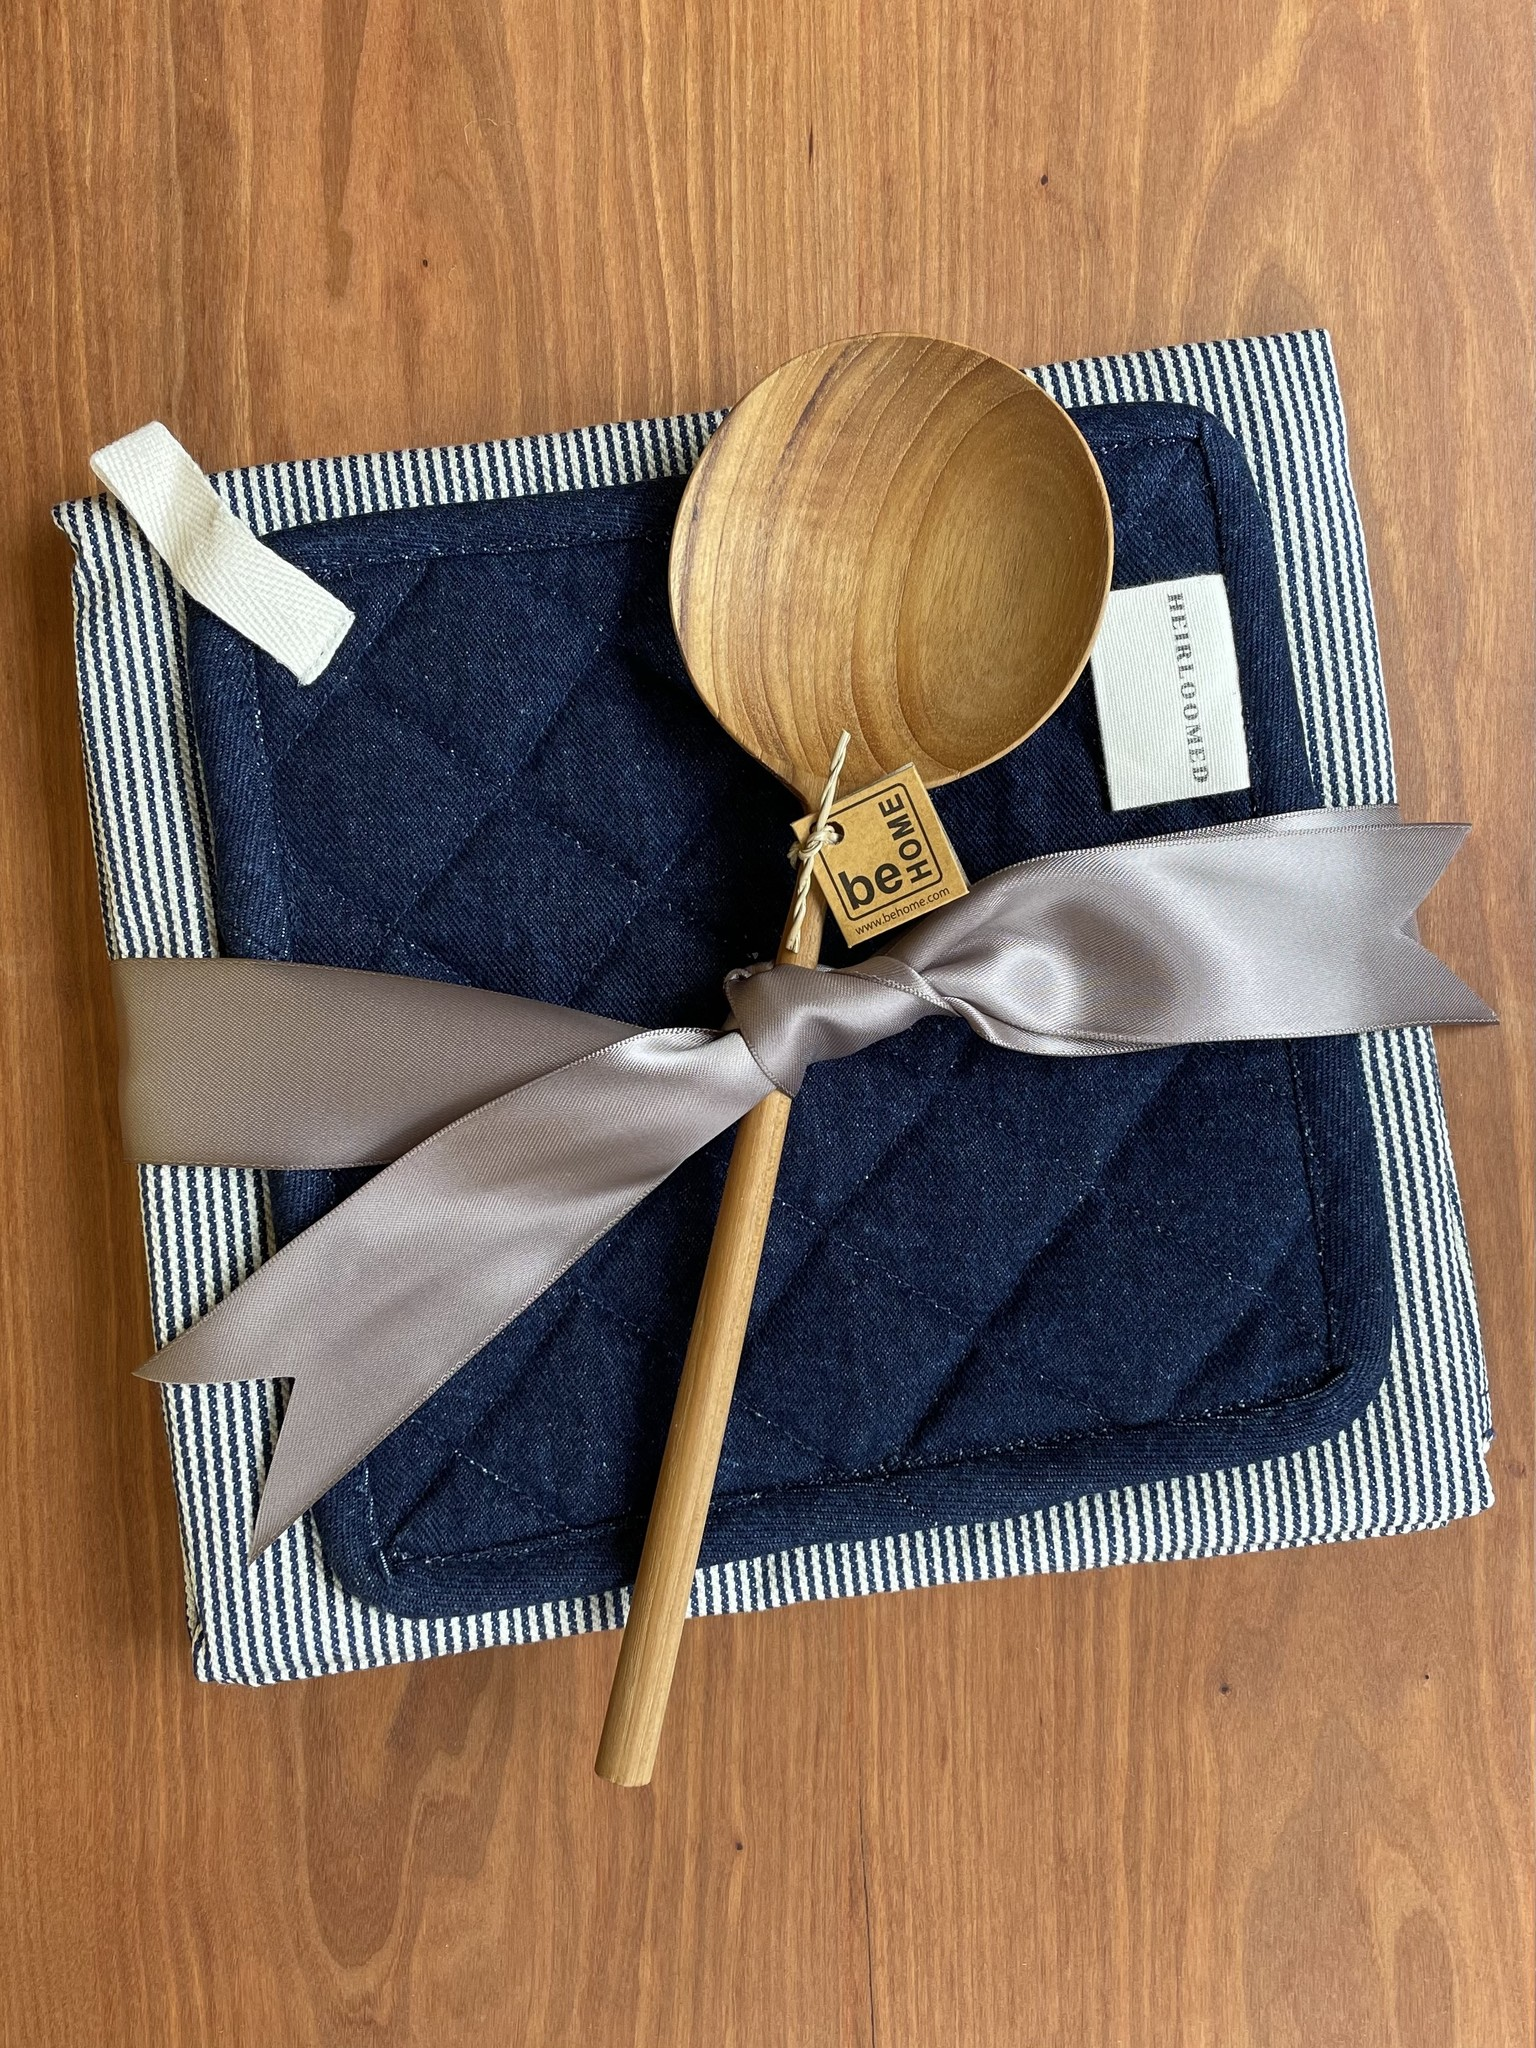 Kitchenwarming Gift Feat. Heirloomed Apron-1